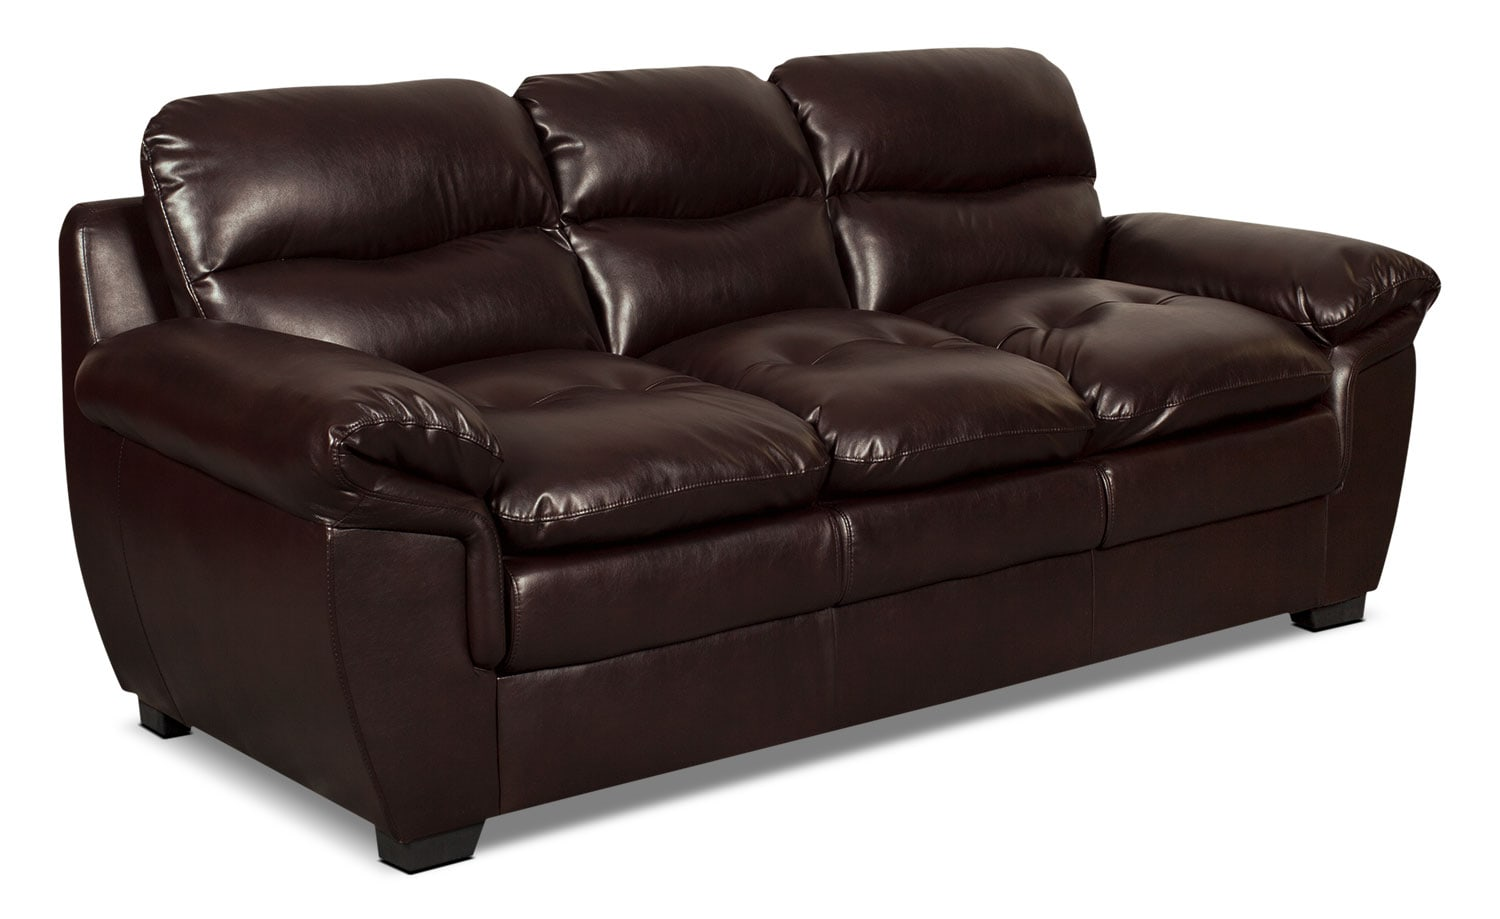 Bryon Leather-Look Fabric Sofa – Brown